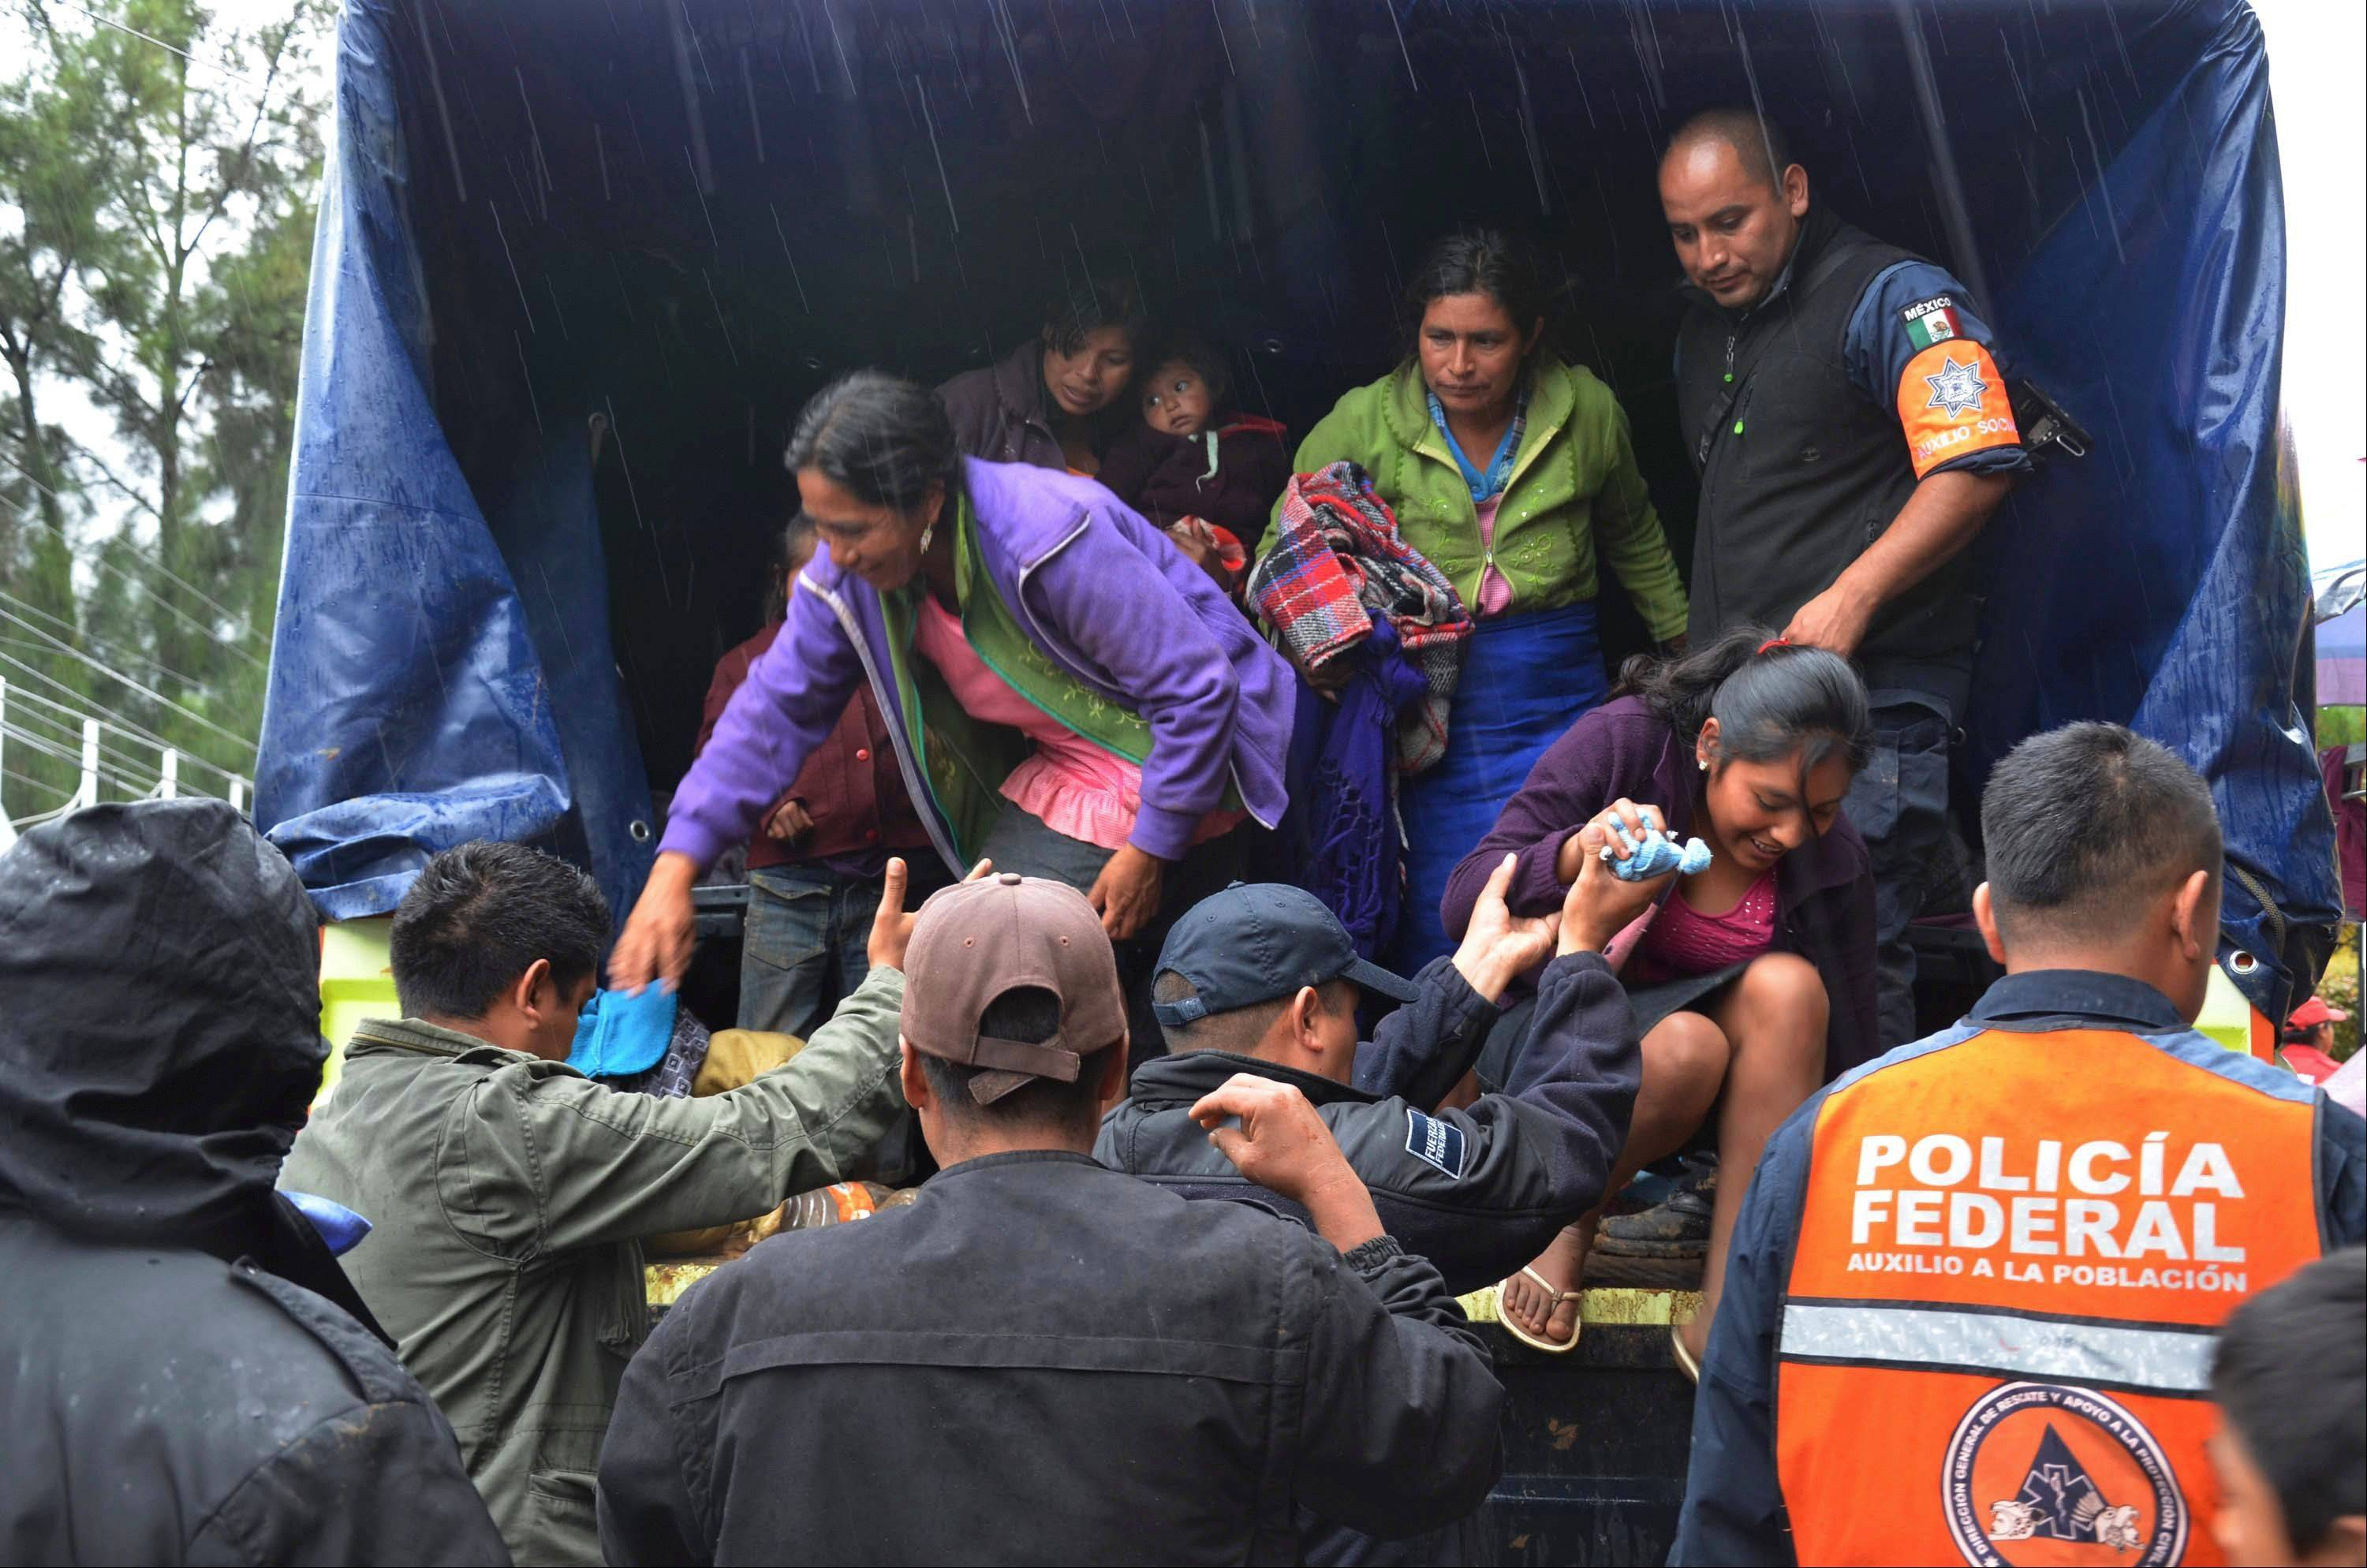 People are helped by federal police as they get off a truck to be taken to as makeshift shelter in the city of Chilpancingo, Mexico, Monday Oct. 21, 2013. At least 120 families from nearby communities were evacuated when Hurricane Raymond gained more strength and threatened to hurl heavy rains onto a sodden region already devastated by last month's Tropical Storm Manuel.